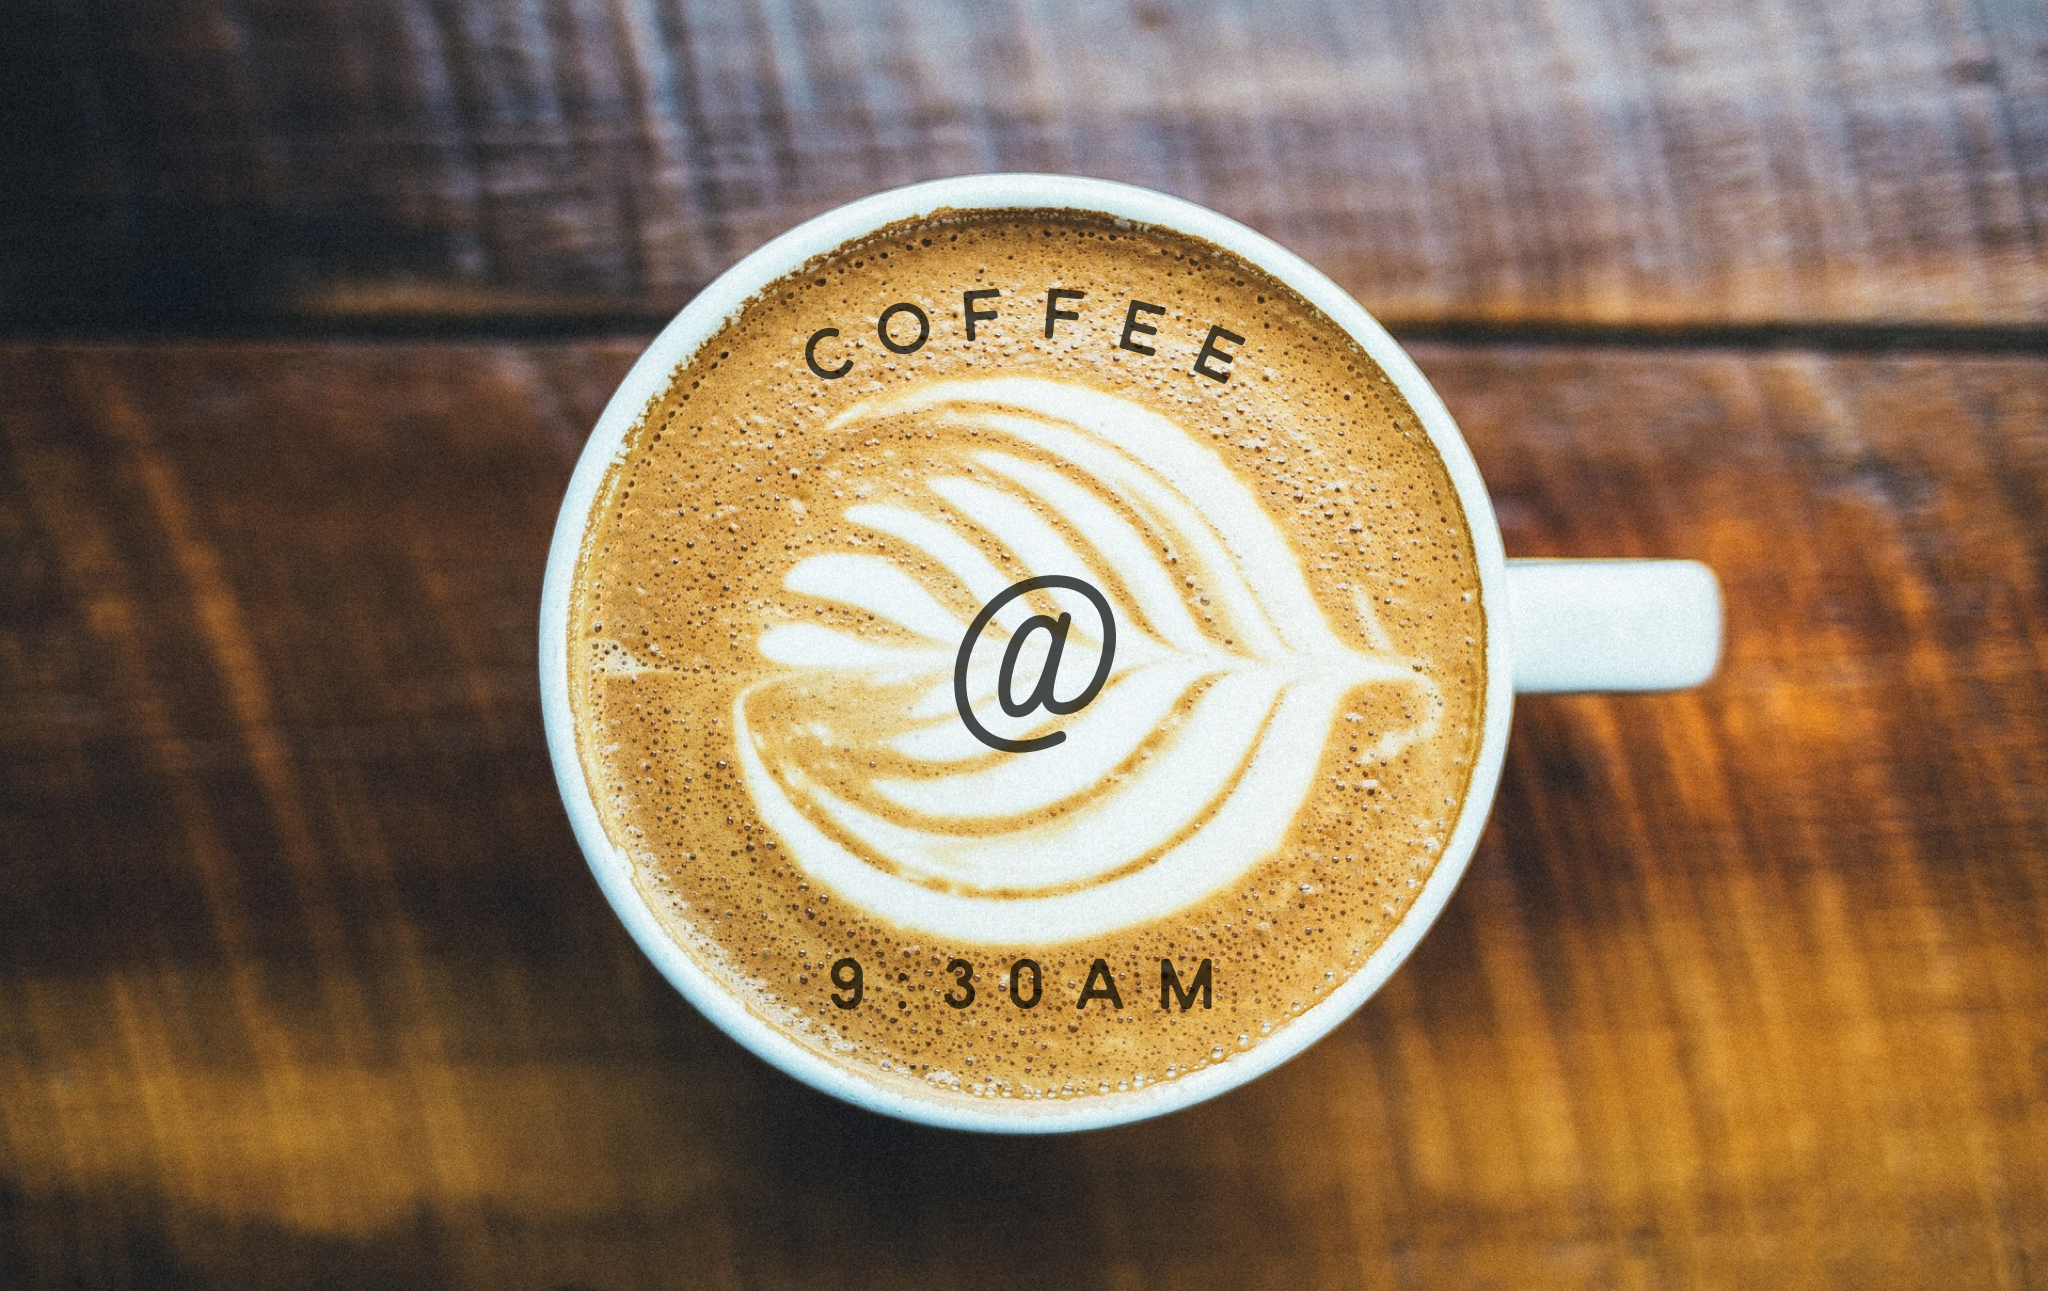 - Coffee refreshments will begin at 9:30am! Come early for a great time of fellowship and refreshments!